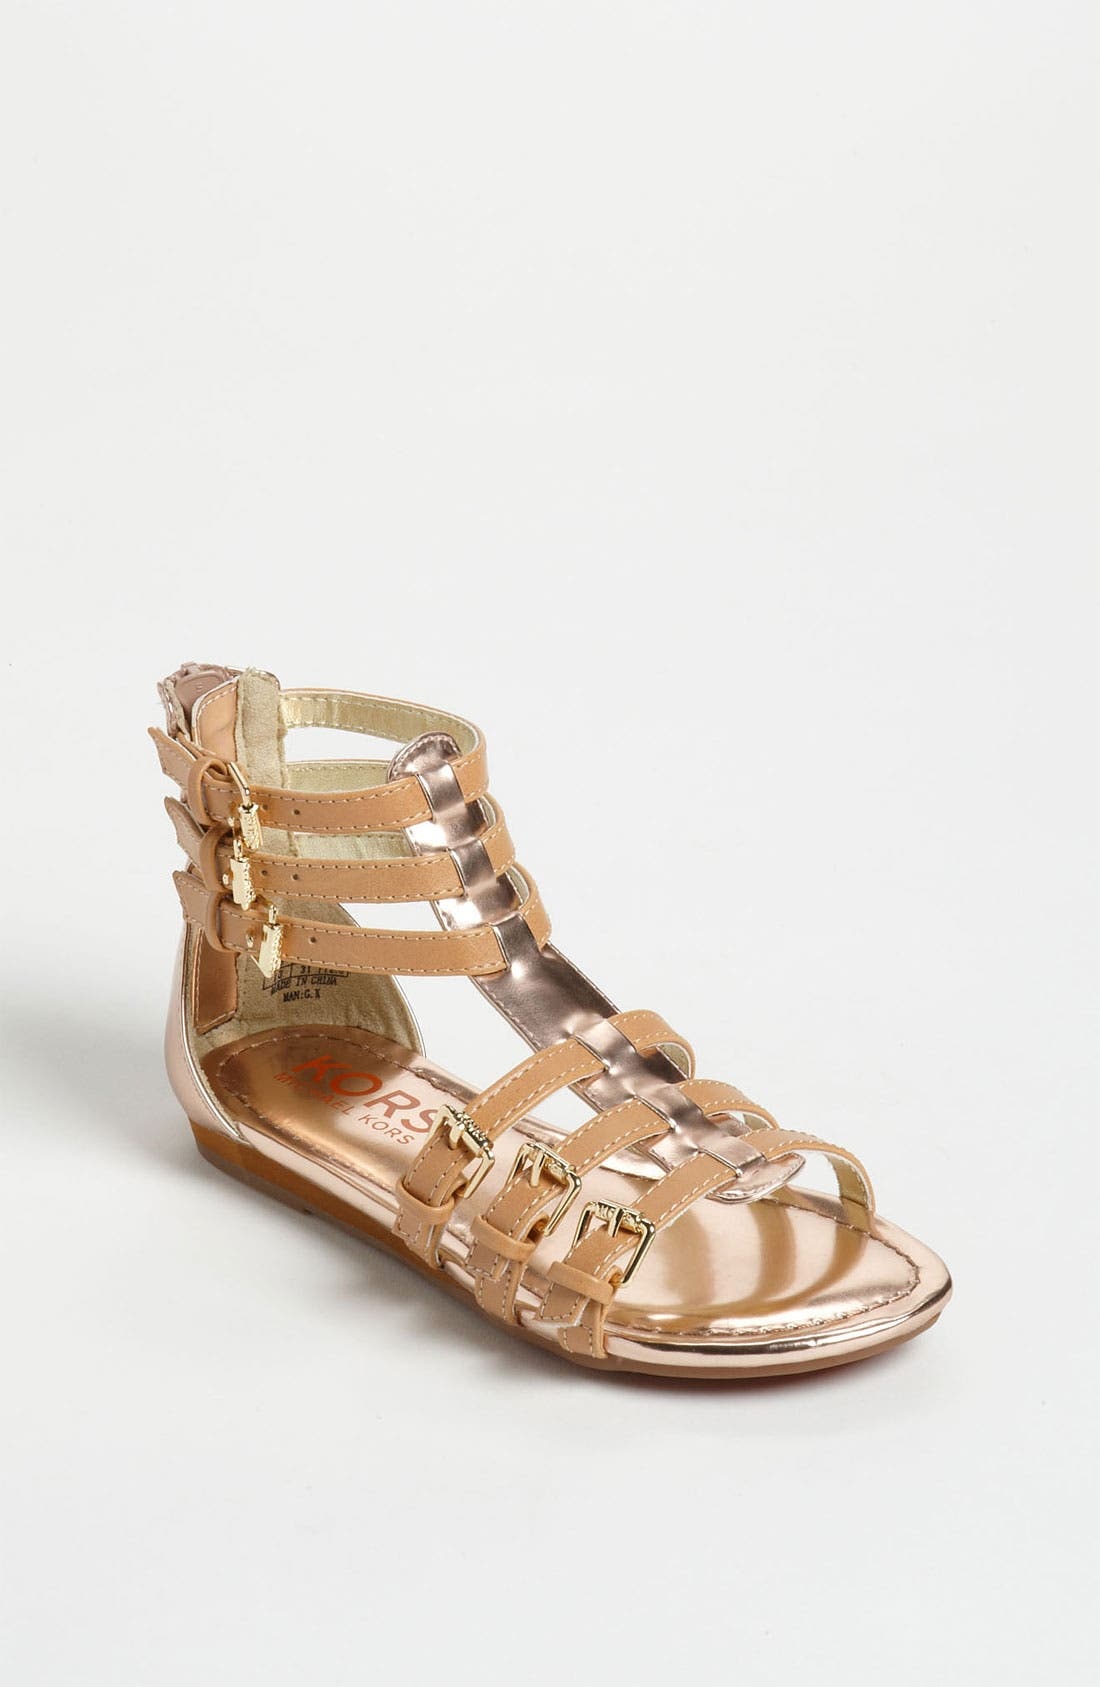 Main Image - KORS Michael Kors 'Grenadine' Gladiator Sandal (Toddler, Little Kid & Big Kid)